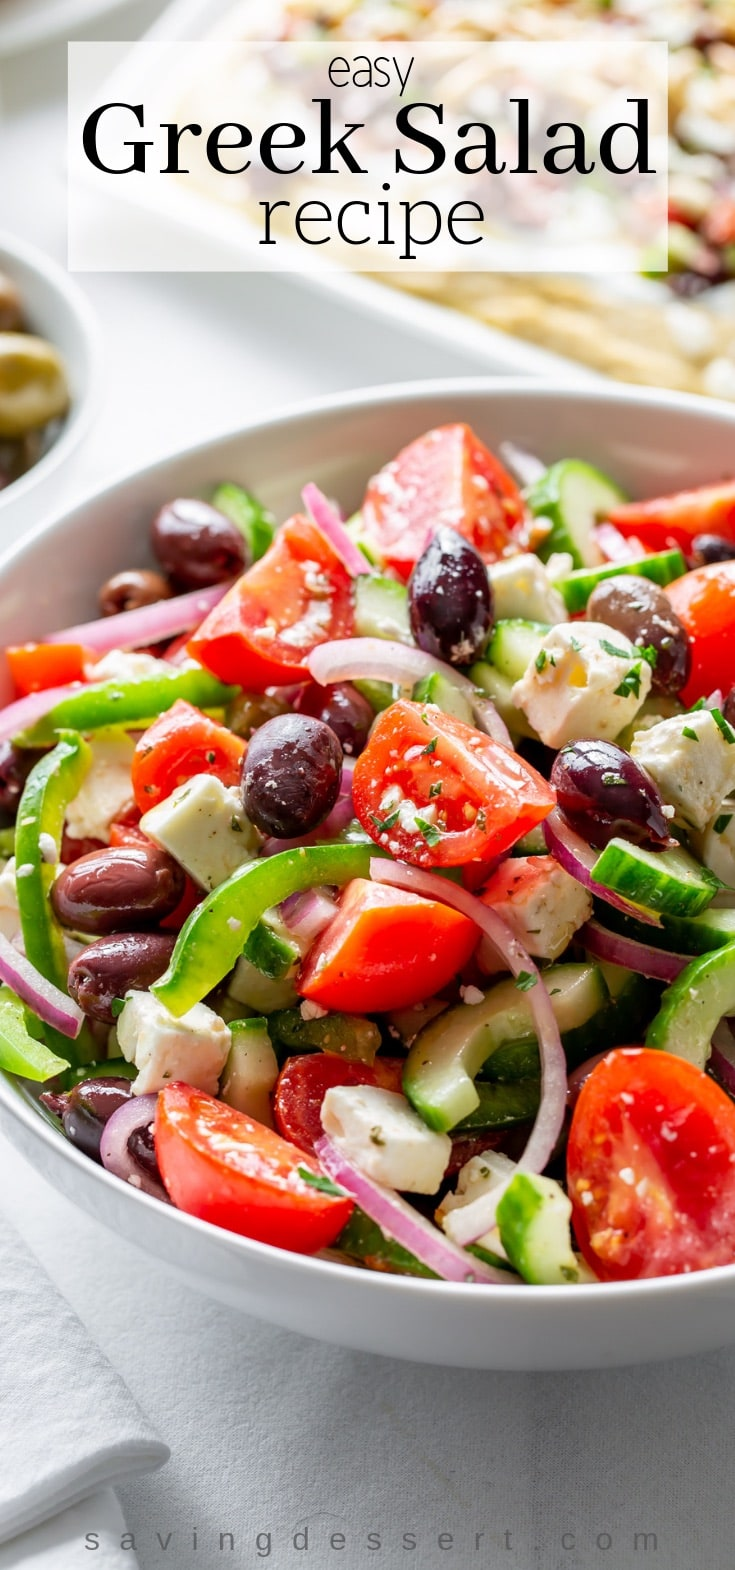 Enjoy this easy Greek Salad Recipe made with crisp, fresh vegetables, feta cheese and olives, simply dressed with herbs, oil and vinegar. #Greeksalad #Greek #easysalad #salad #Greeksaladrecipe #saladrecipe